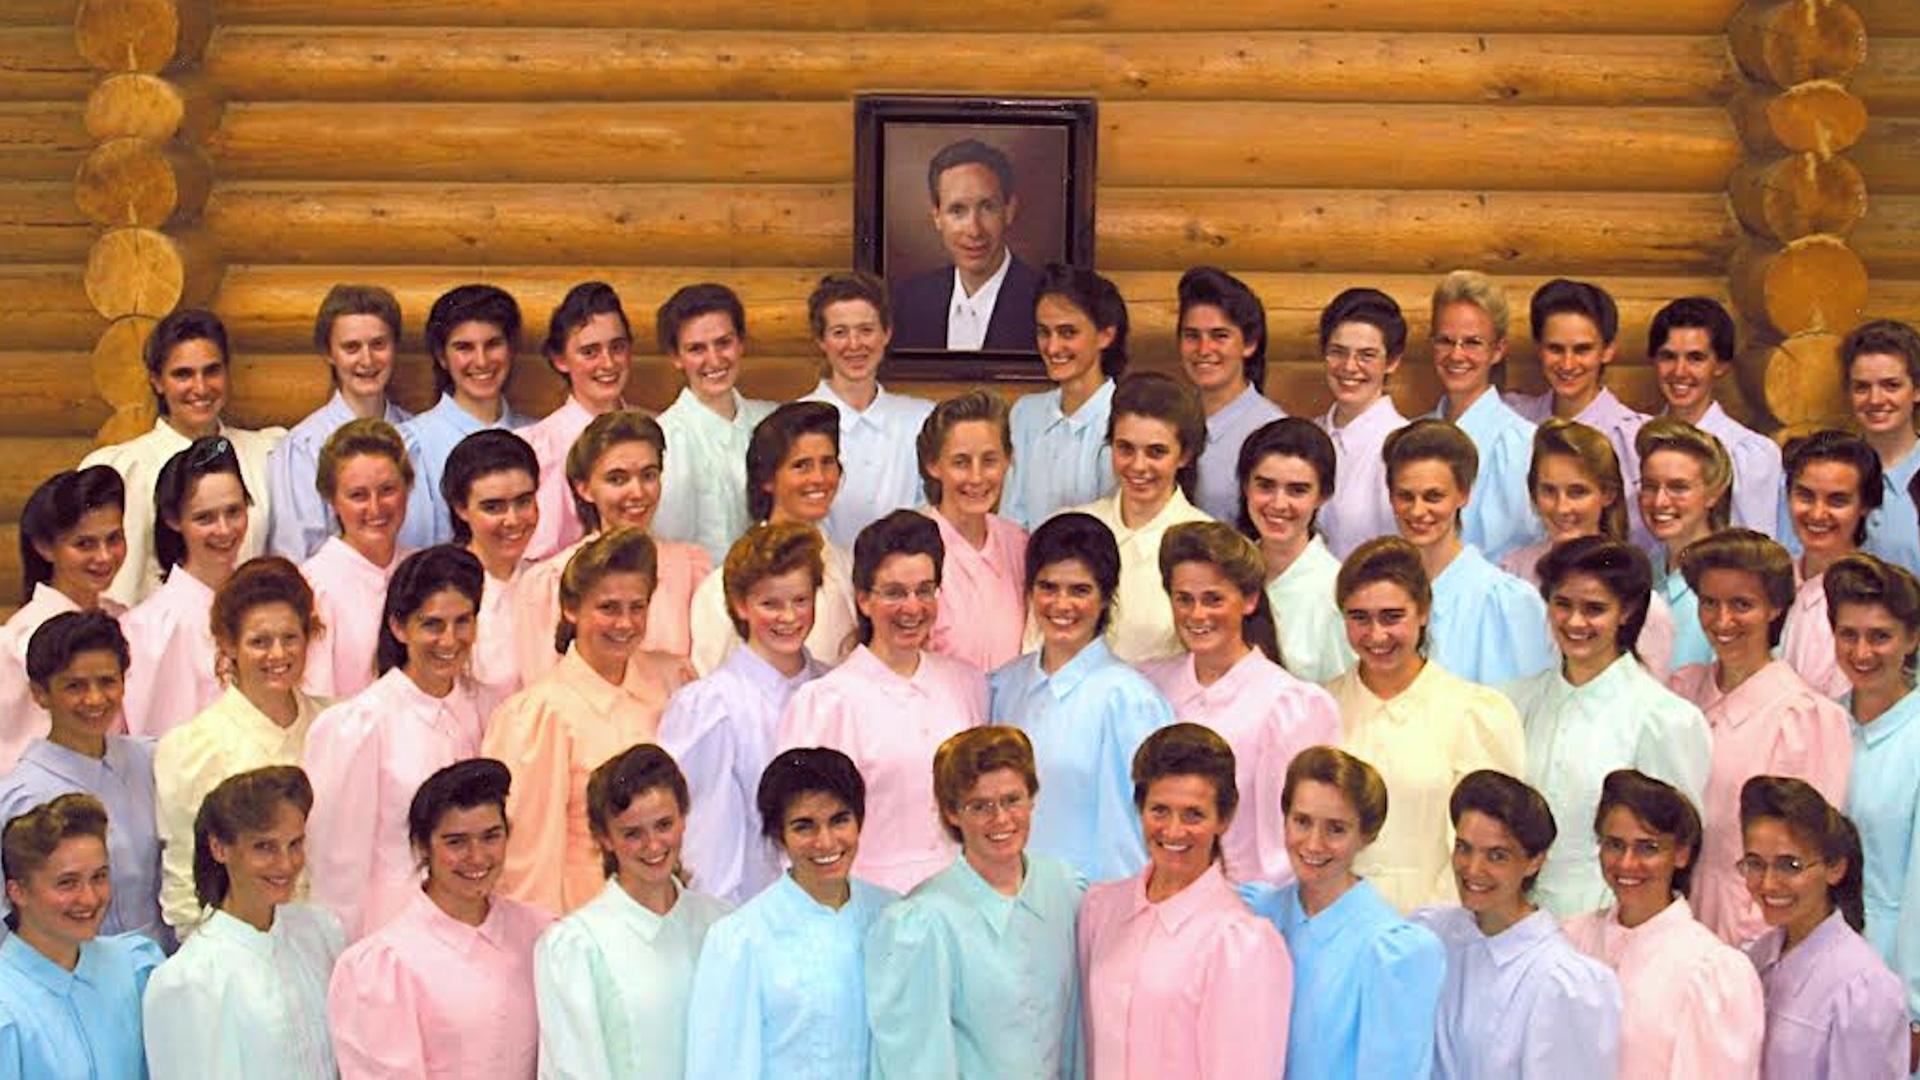 Sundance: 'Prophet's Prey' Director Says Warren Jeffs is 'More Powerful From Prison'